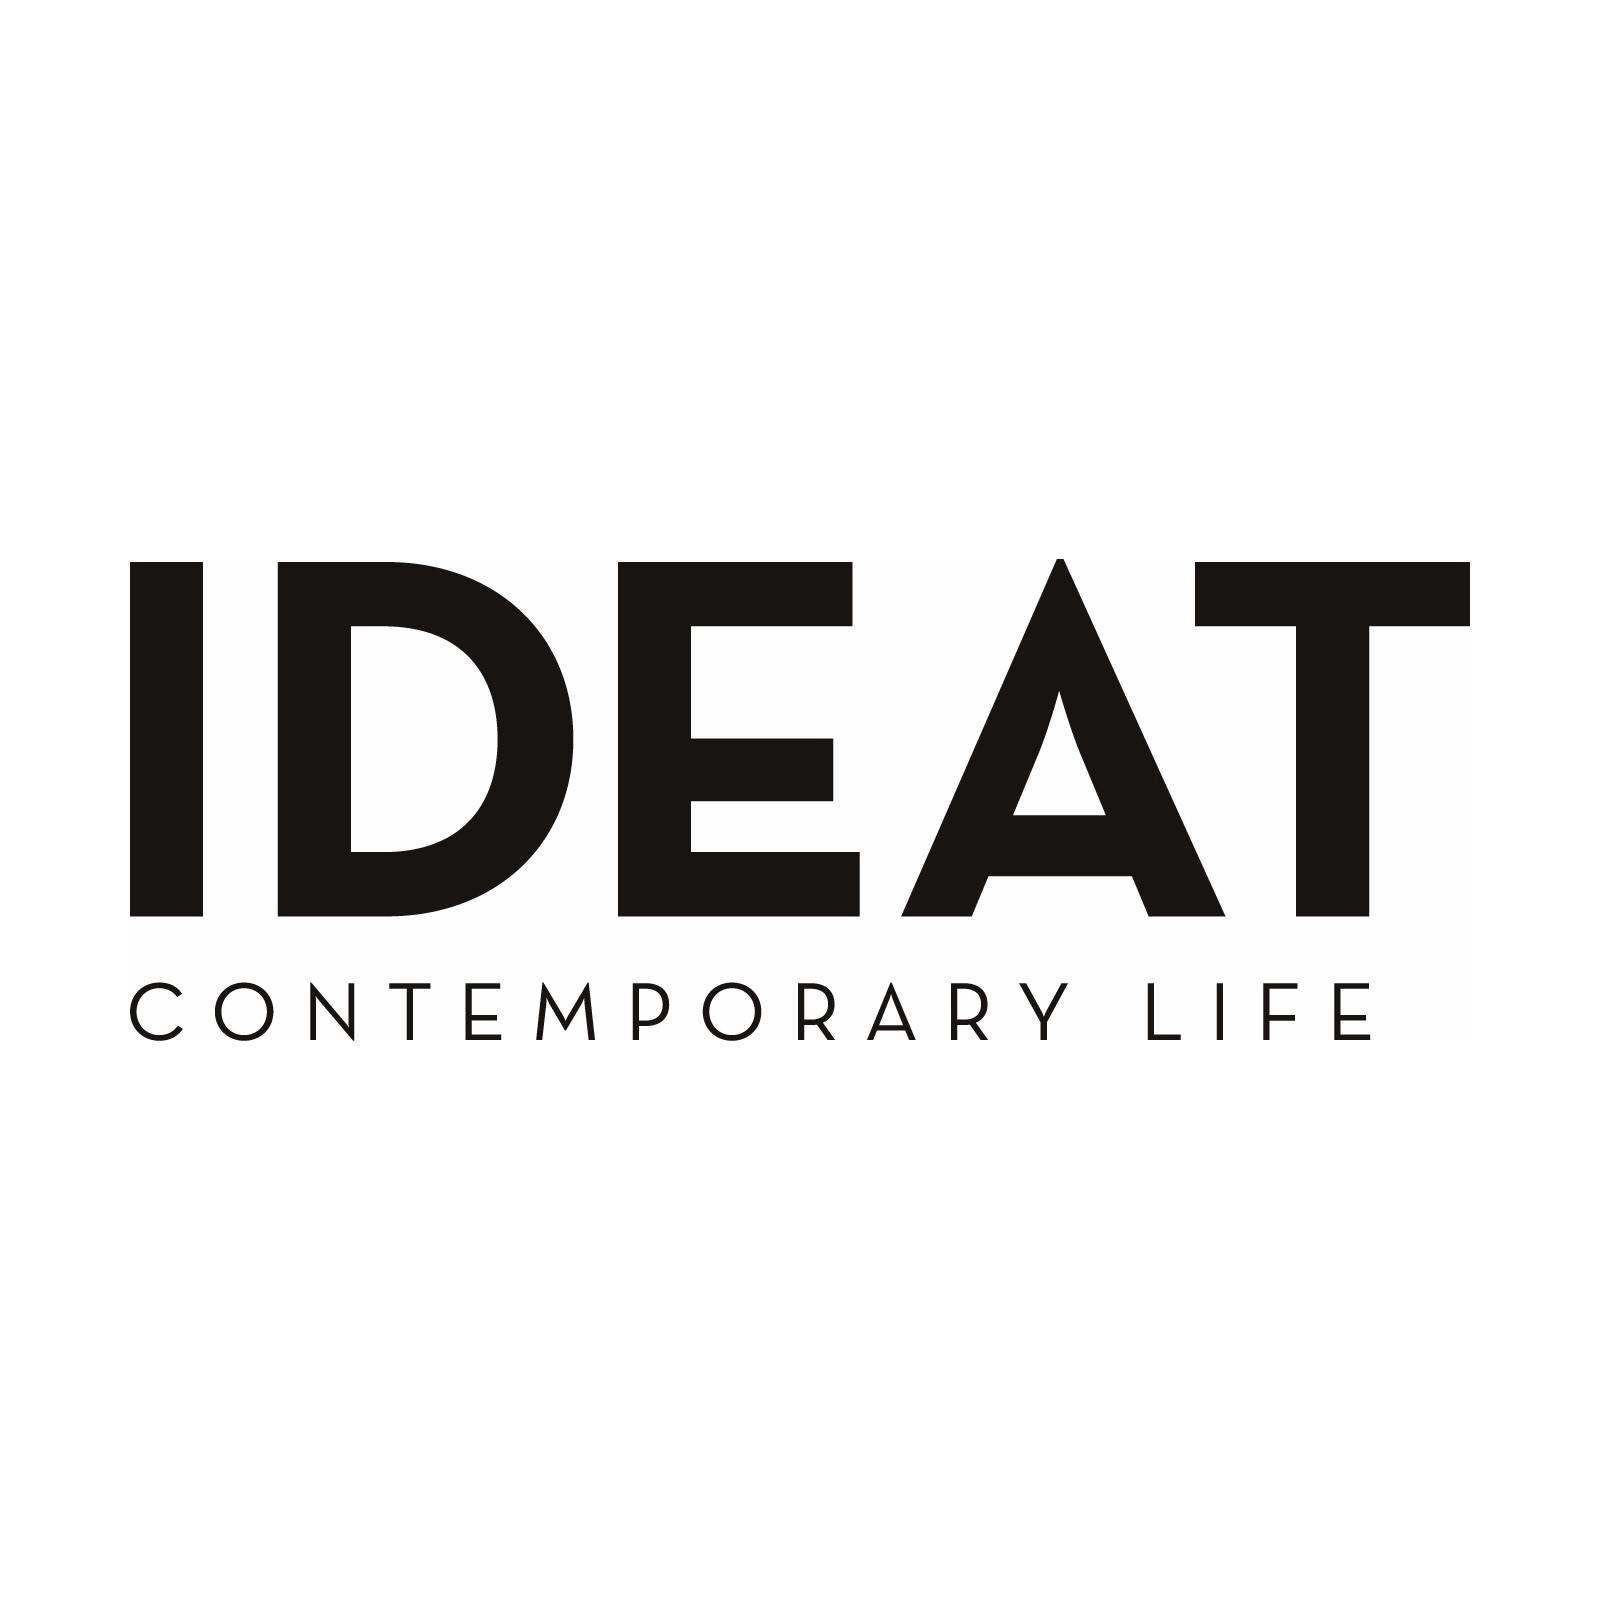 Les adresses lifestyle by IDEAT